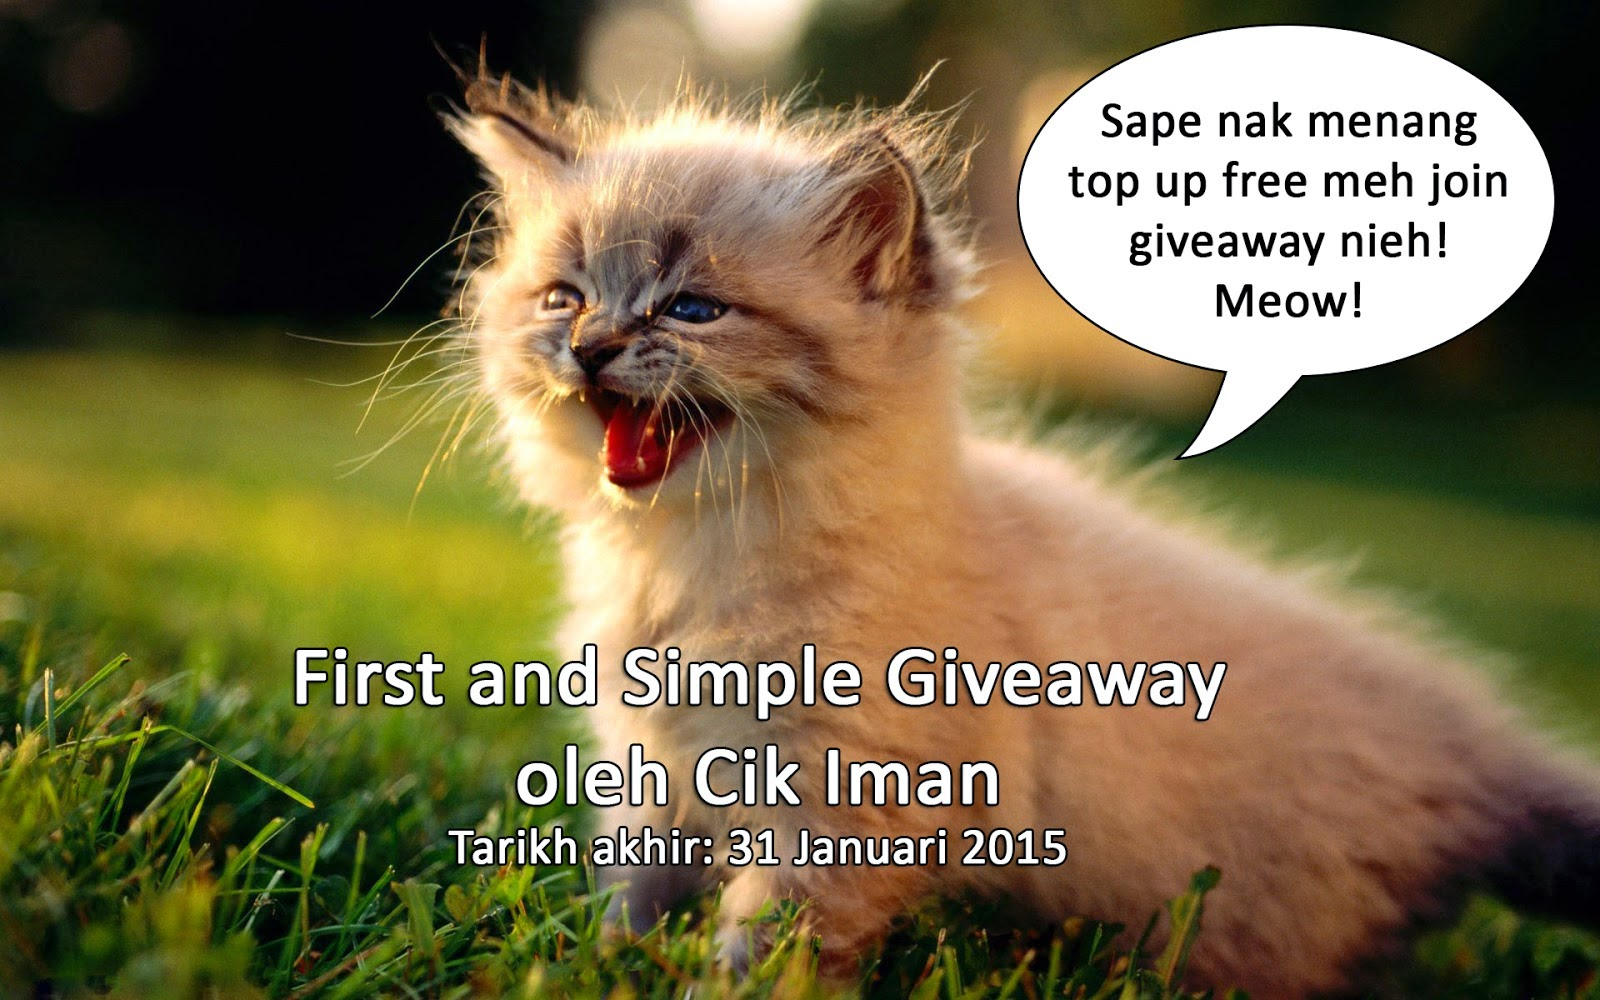 http://cikimanbobe.blogspot.com/2015/01/first-and-simple-giveaway-oleh-cik-iman.html